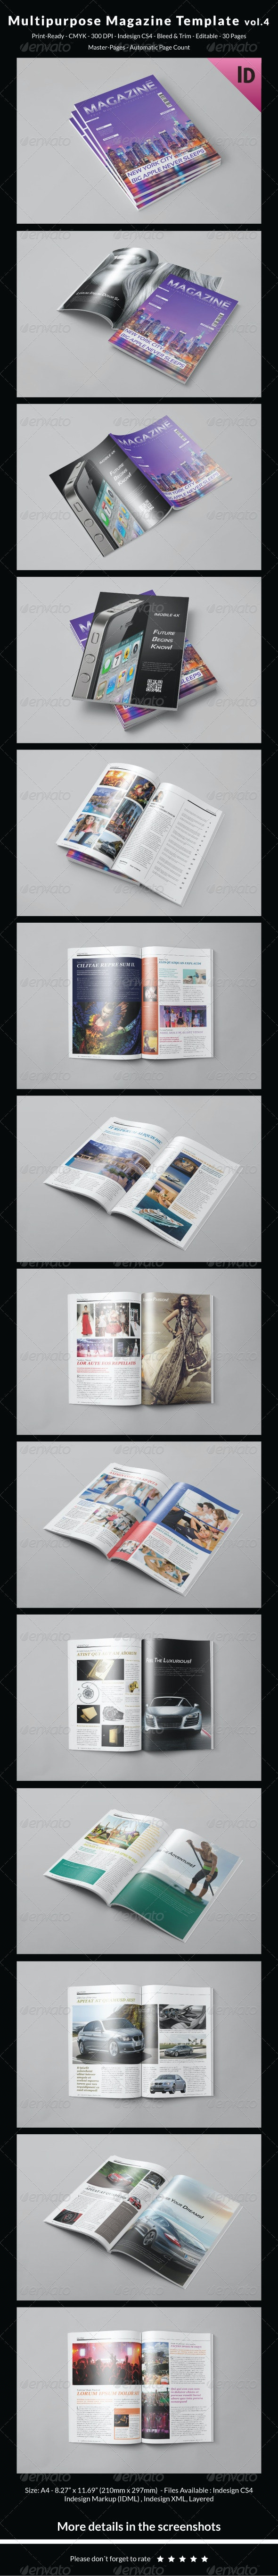 Multipurpose Magazine Template Vol.4 - Magazines Print Templates